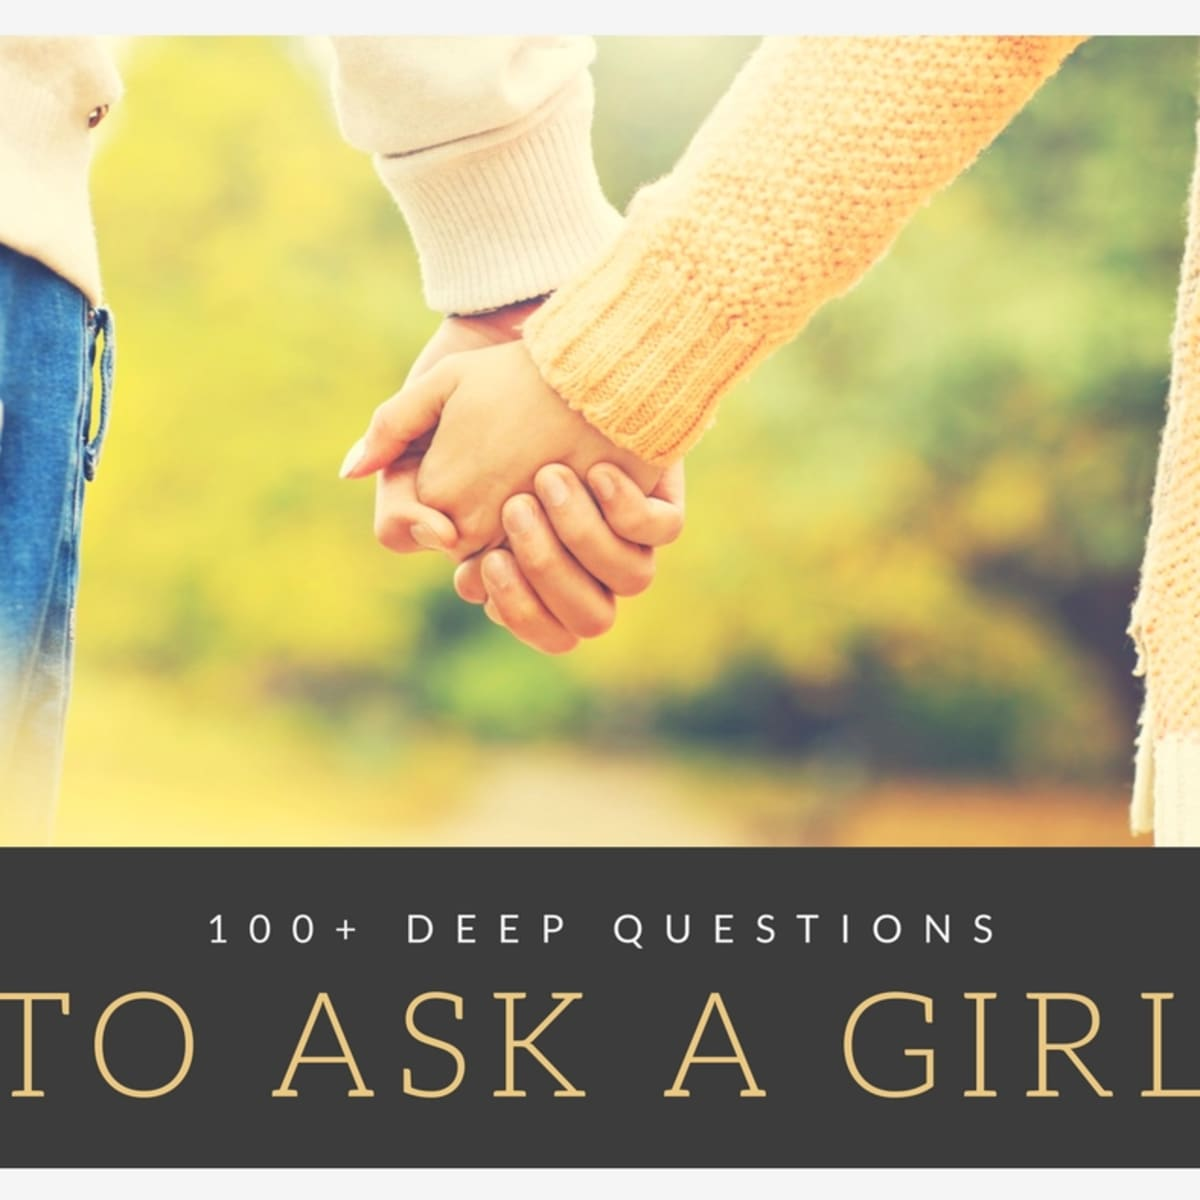 Questions to a perfect girl ask 10 Great